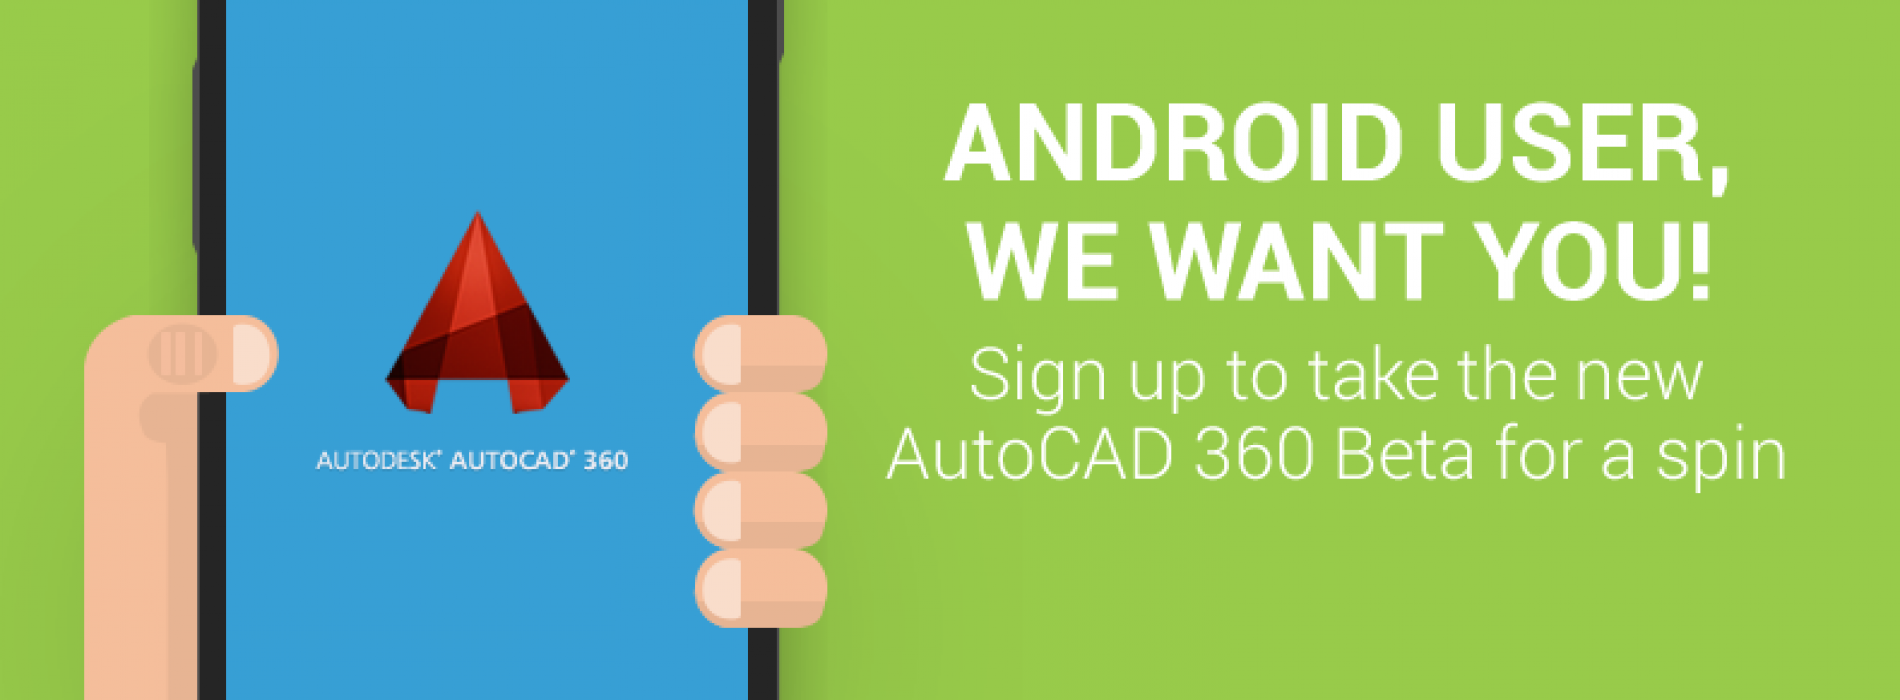 Beta testers wanted for AutoCAD 360